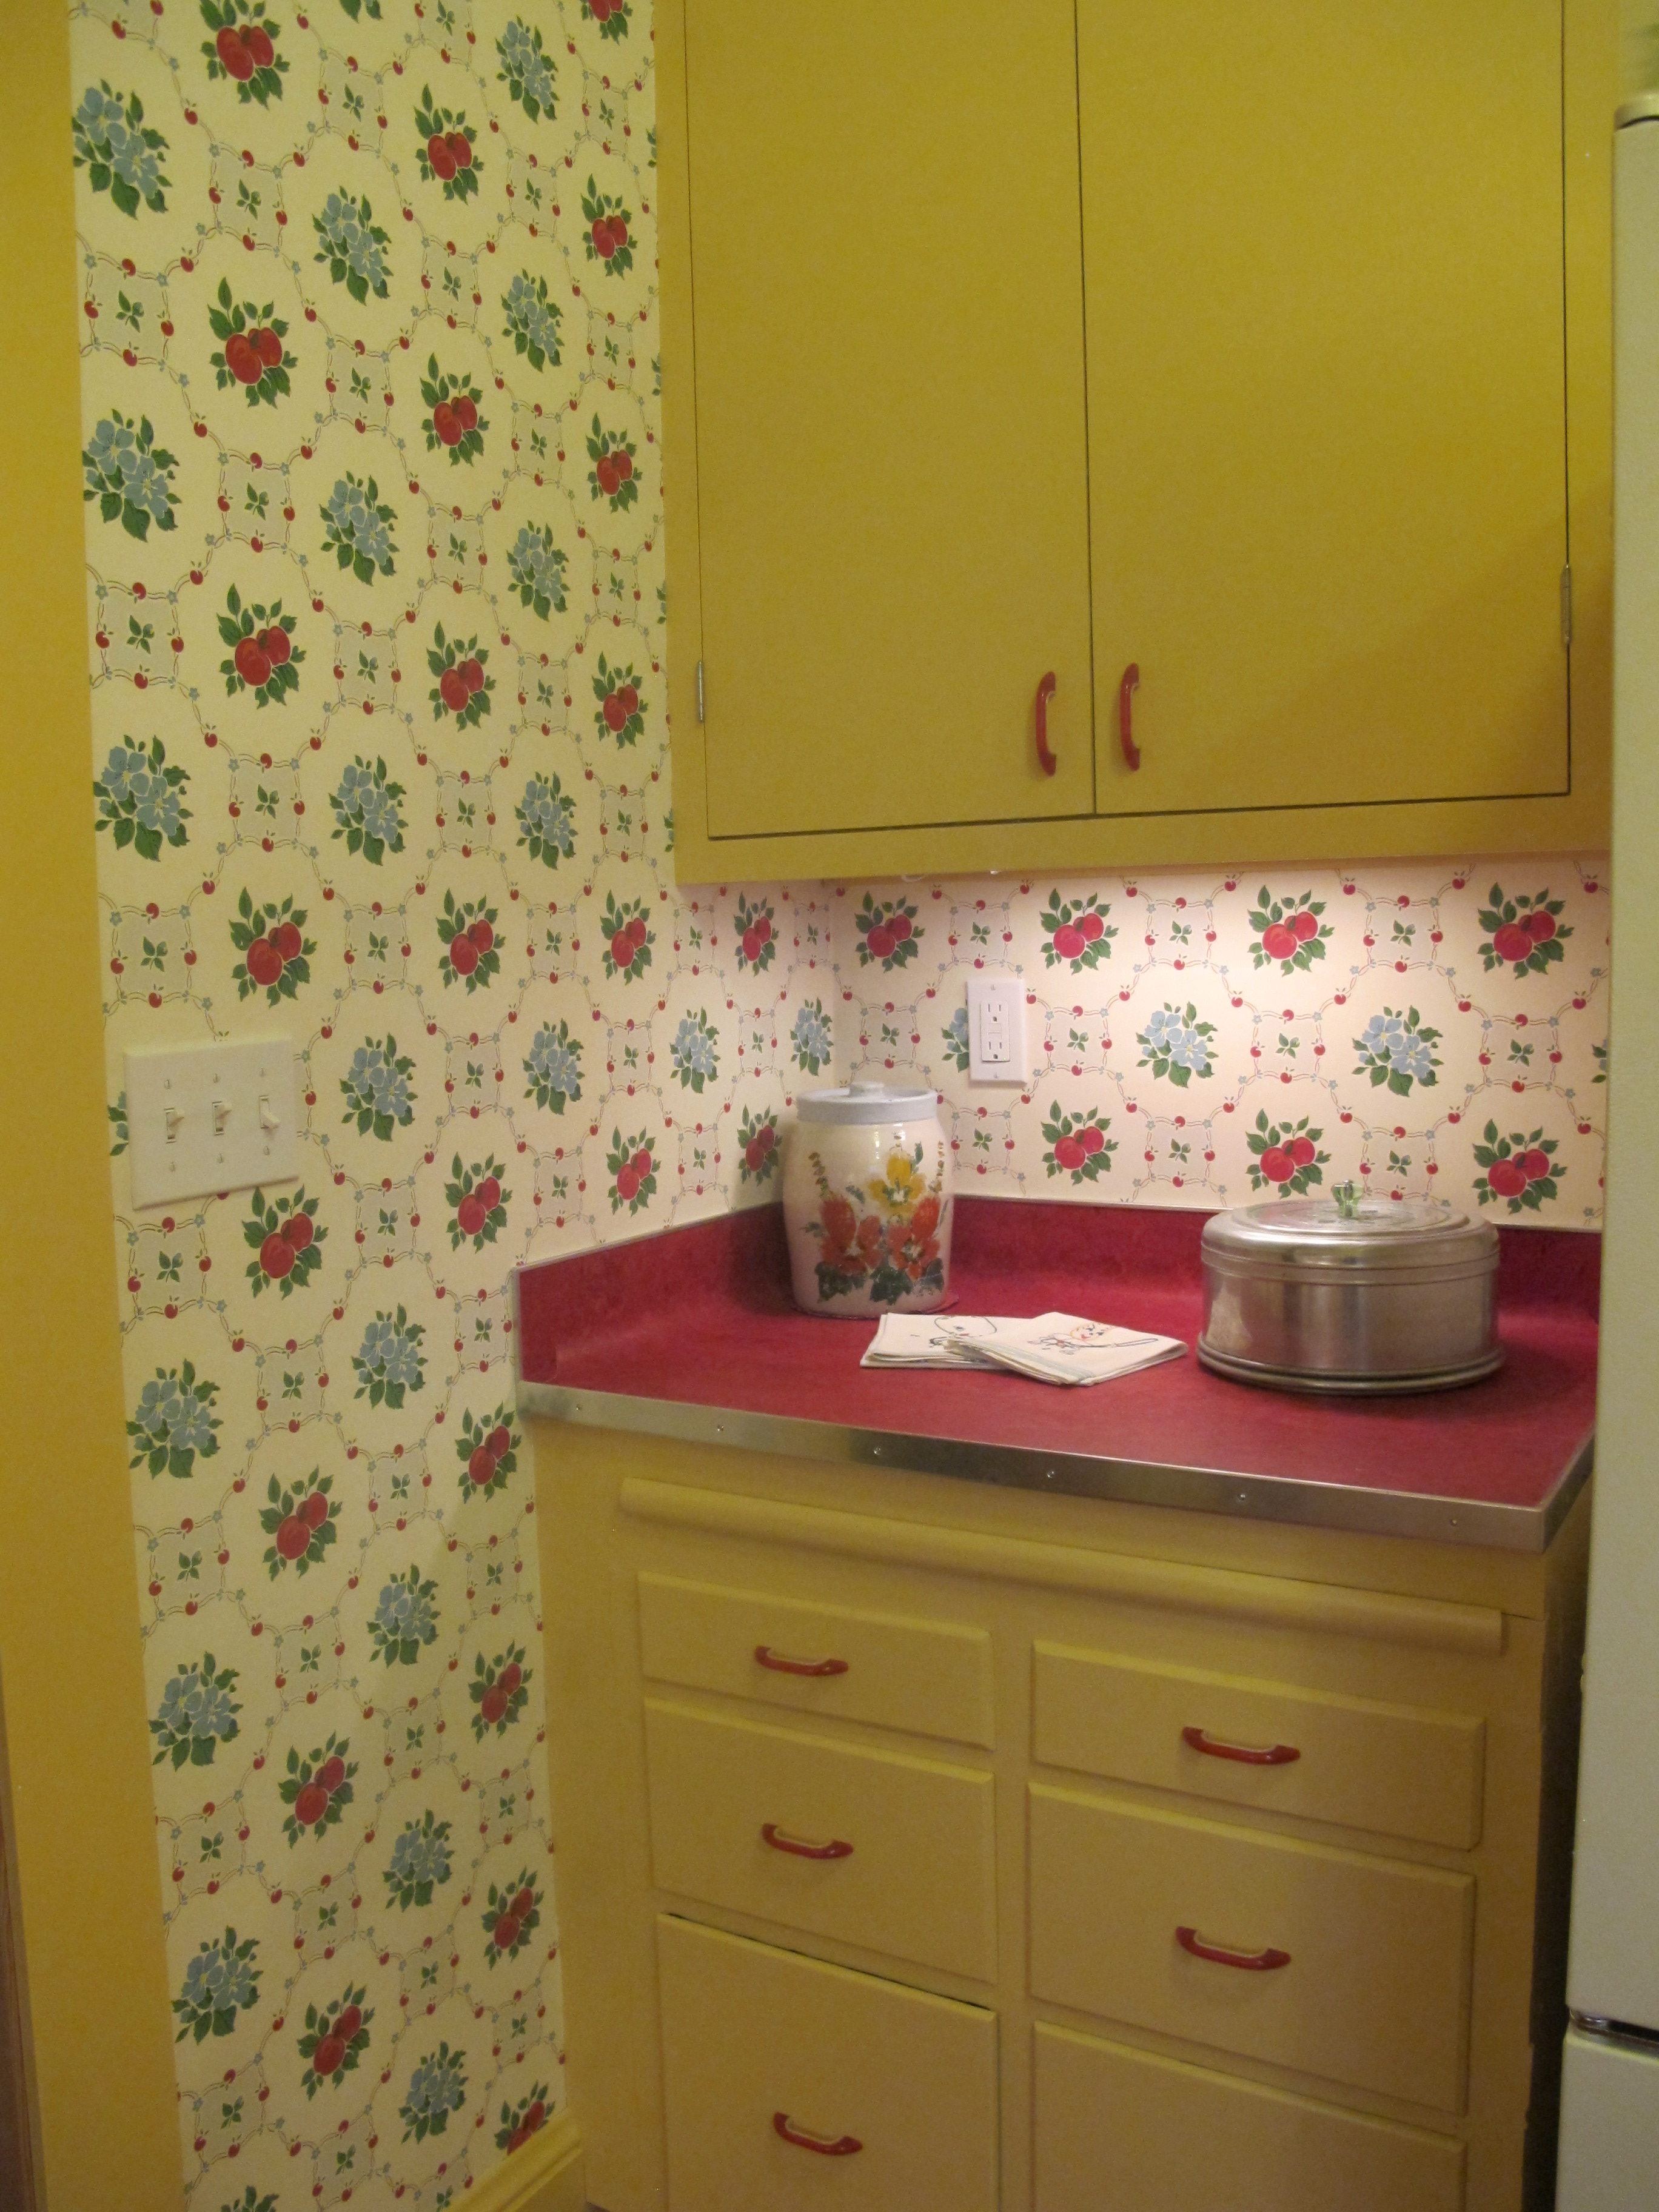 Kitchen Kitchen Wall Kitchen Wallpaper Retro Vintage Kitchen Wall 2736x3648